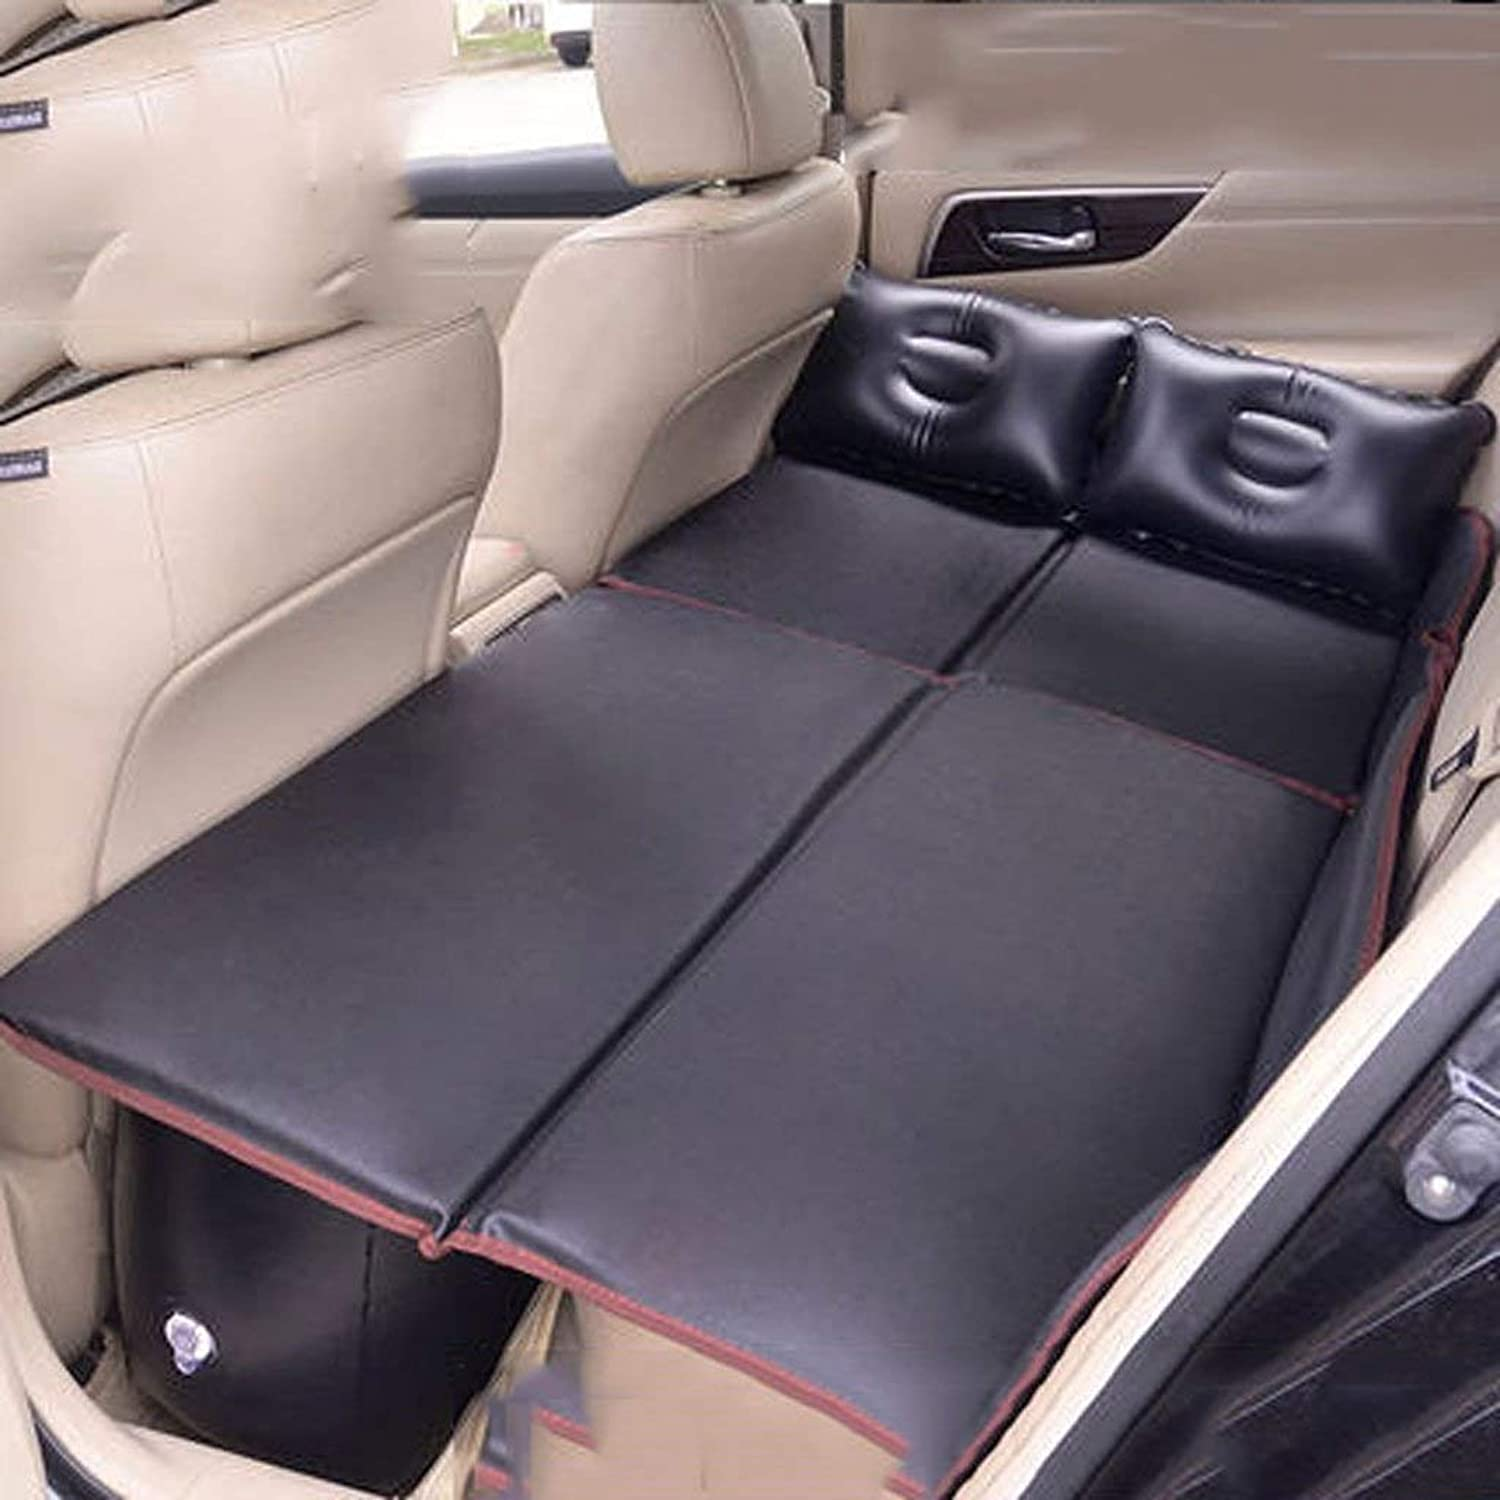 SPTAIR Auto Car Inflatable Air Mattress Bed for Back Seat of Cars SUV's and MidSize Trucks Outdoor Travel Camping Universal